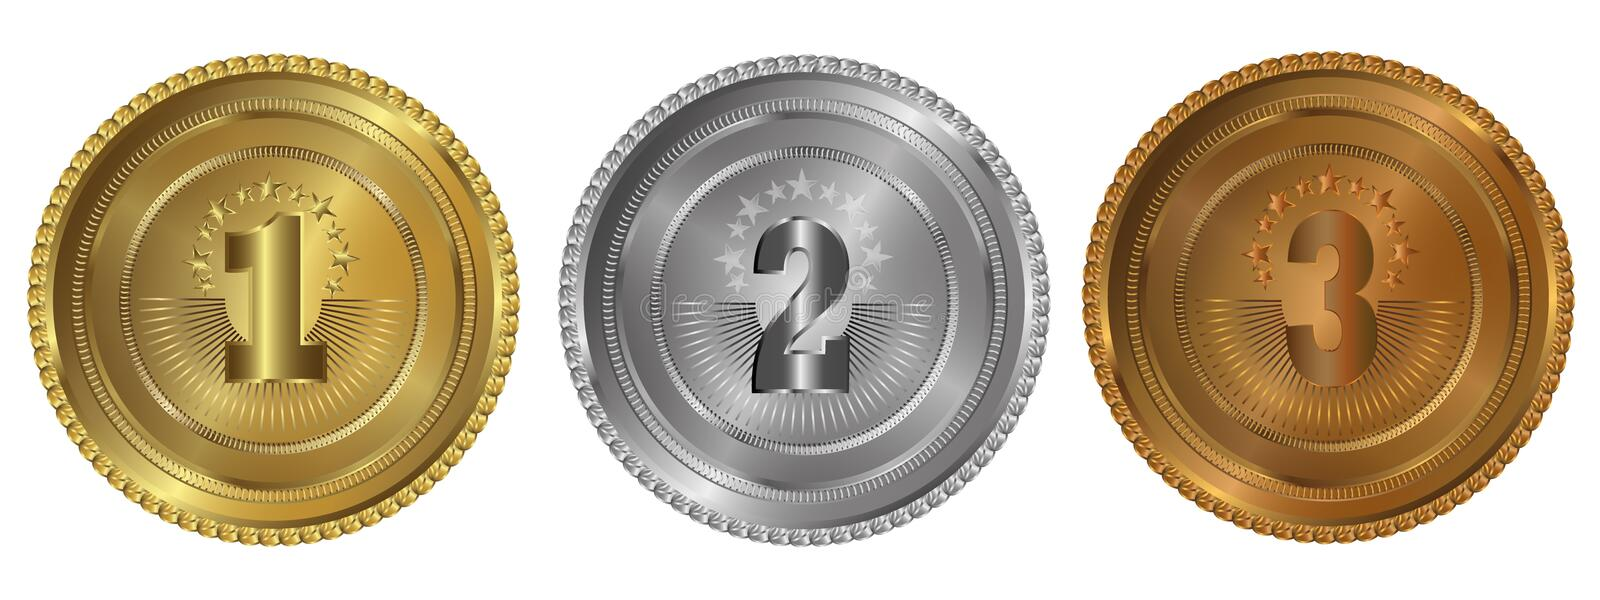 Gold, silver and bronze seals or medals royalty free illustration